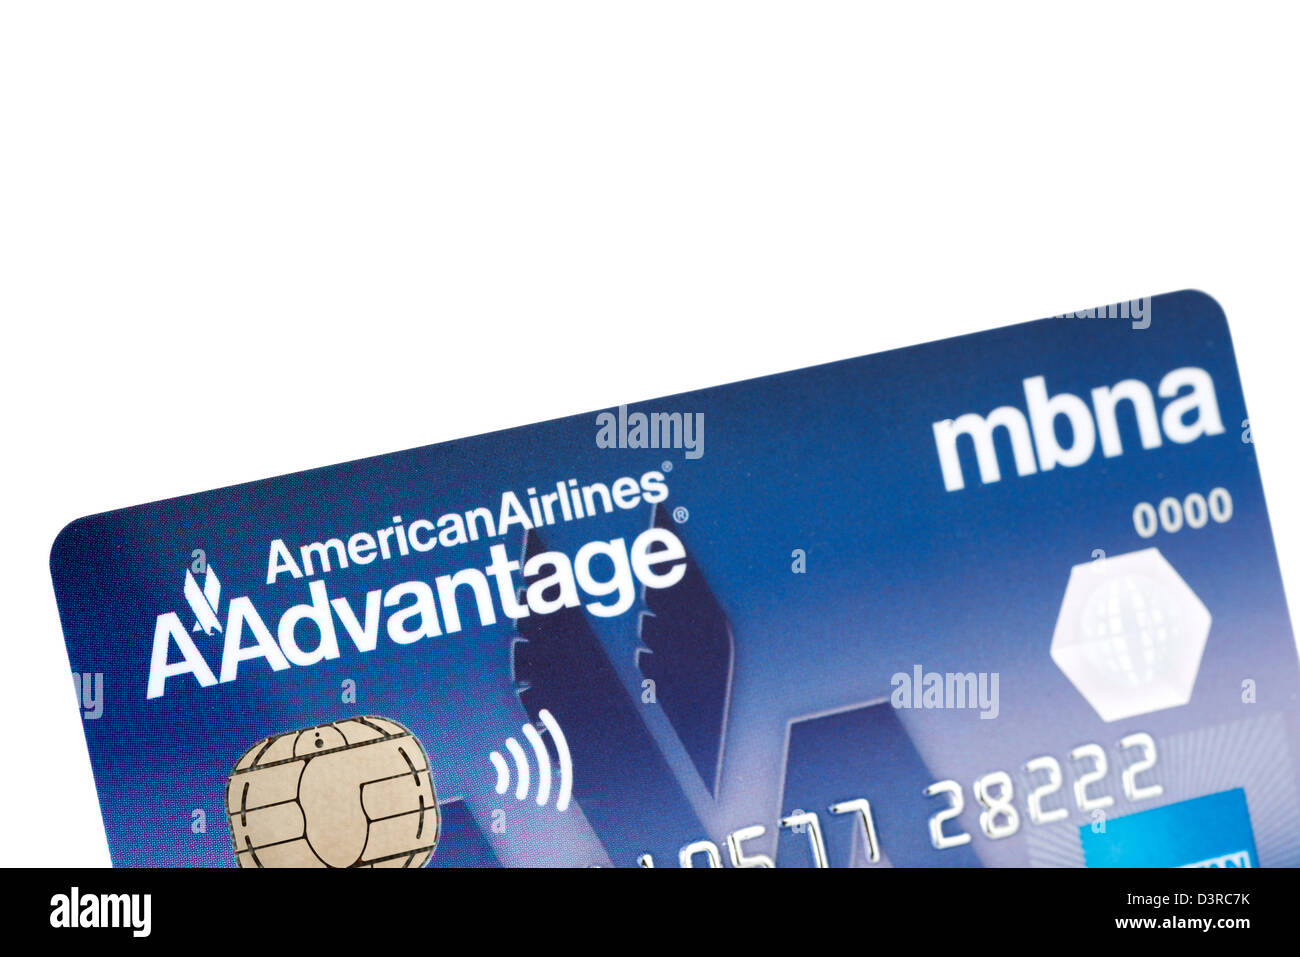 American Airlines AAdvantage branded credit card issued in the UK - Stock Image